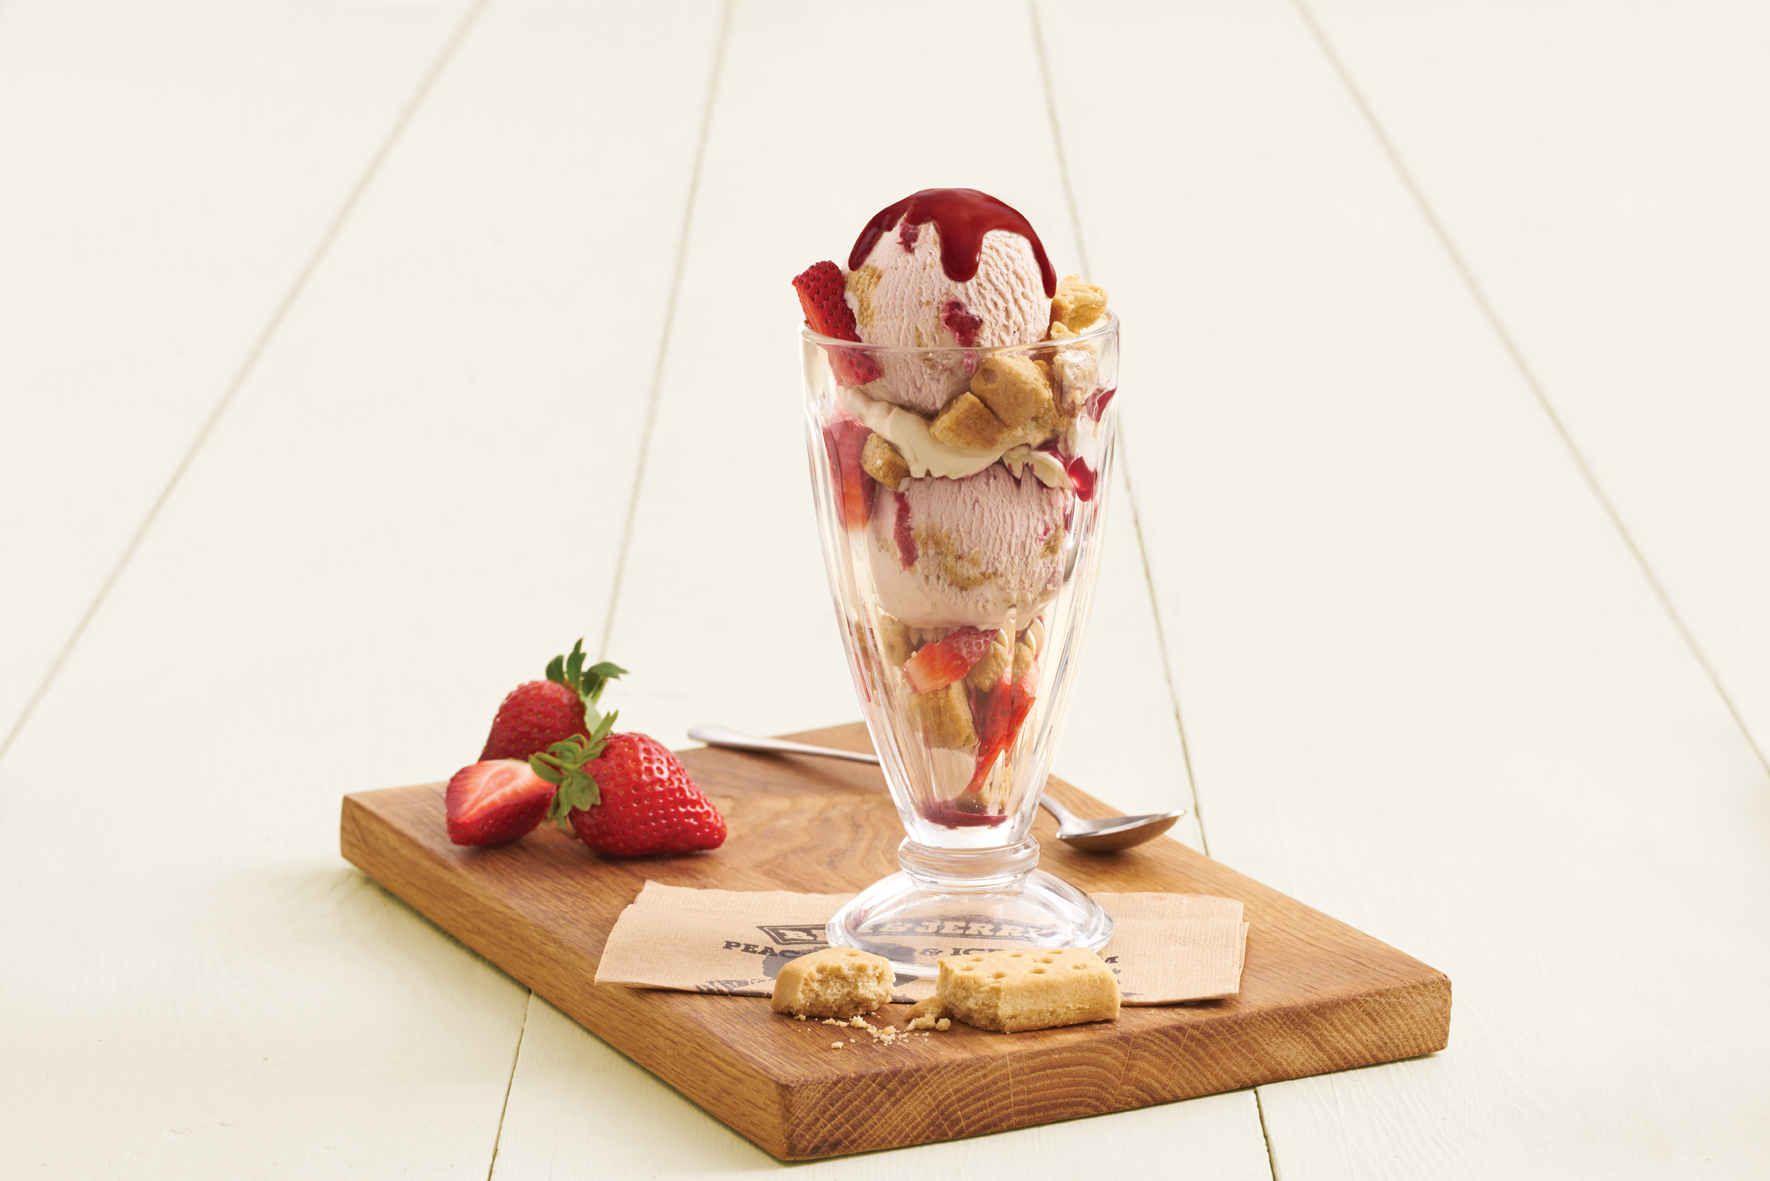 image - B%26J-sundae-strawberry-shortcake-WARM-V2-HR.jpg